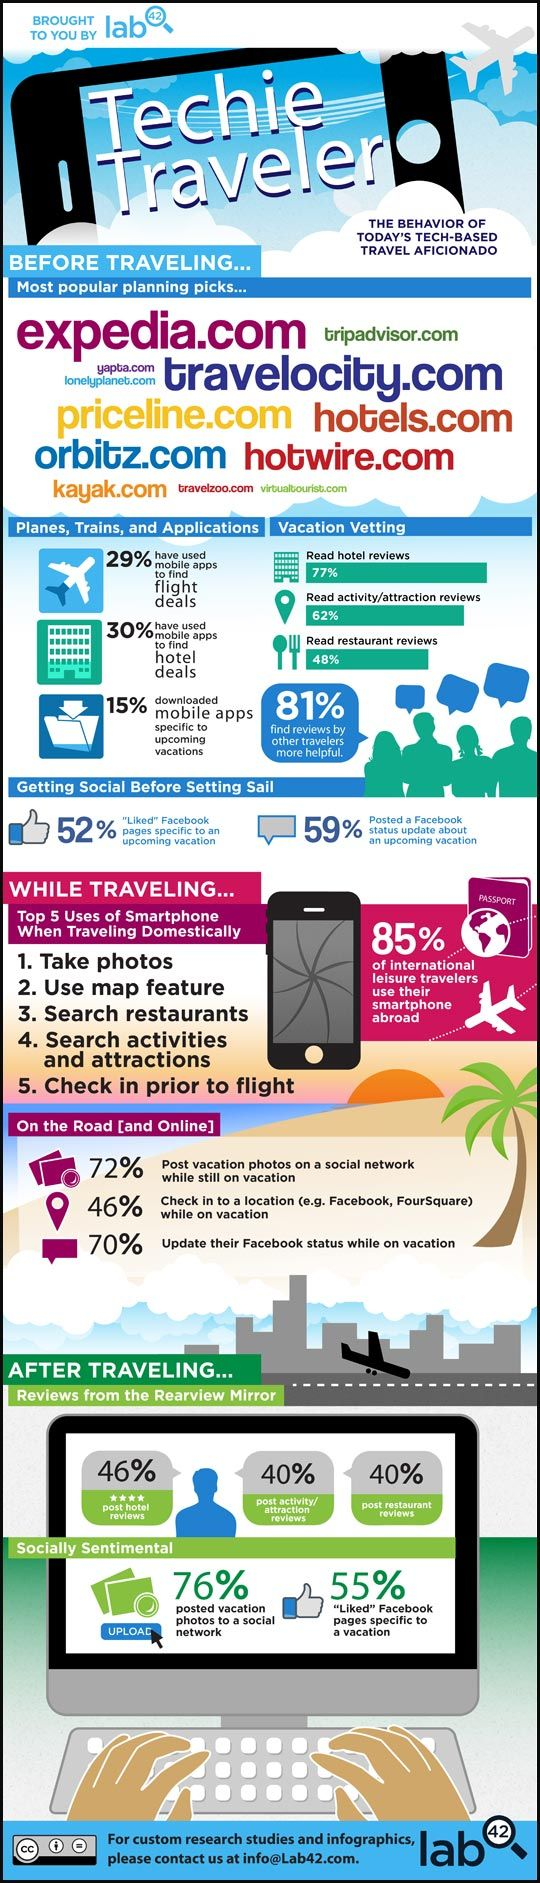 This infographic is a result of a survey of social media users to discover how they use technology before, during, and after their travels.